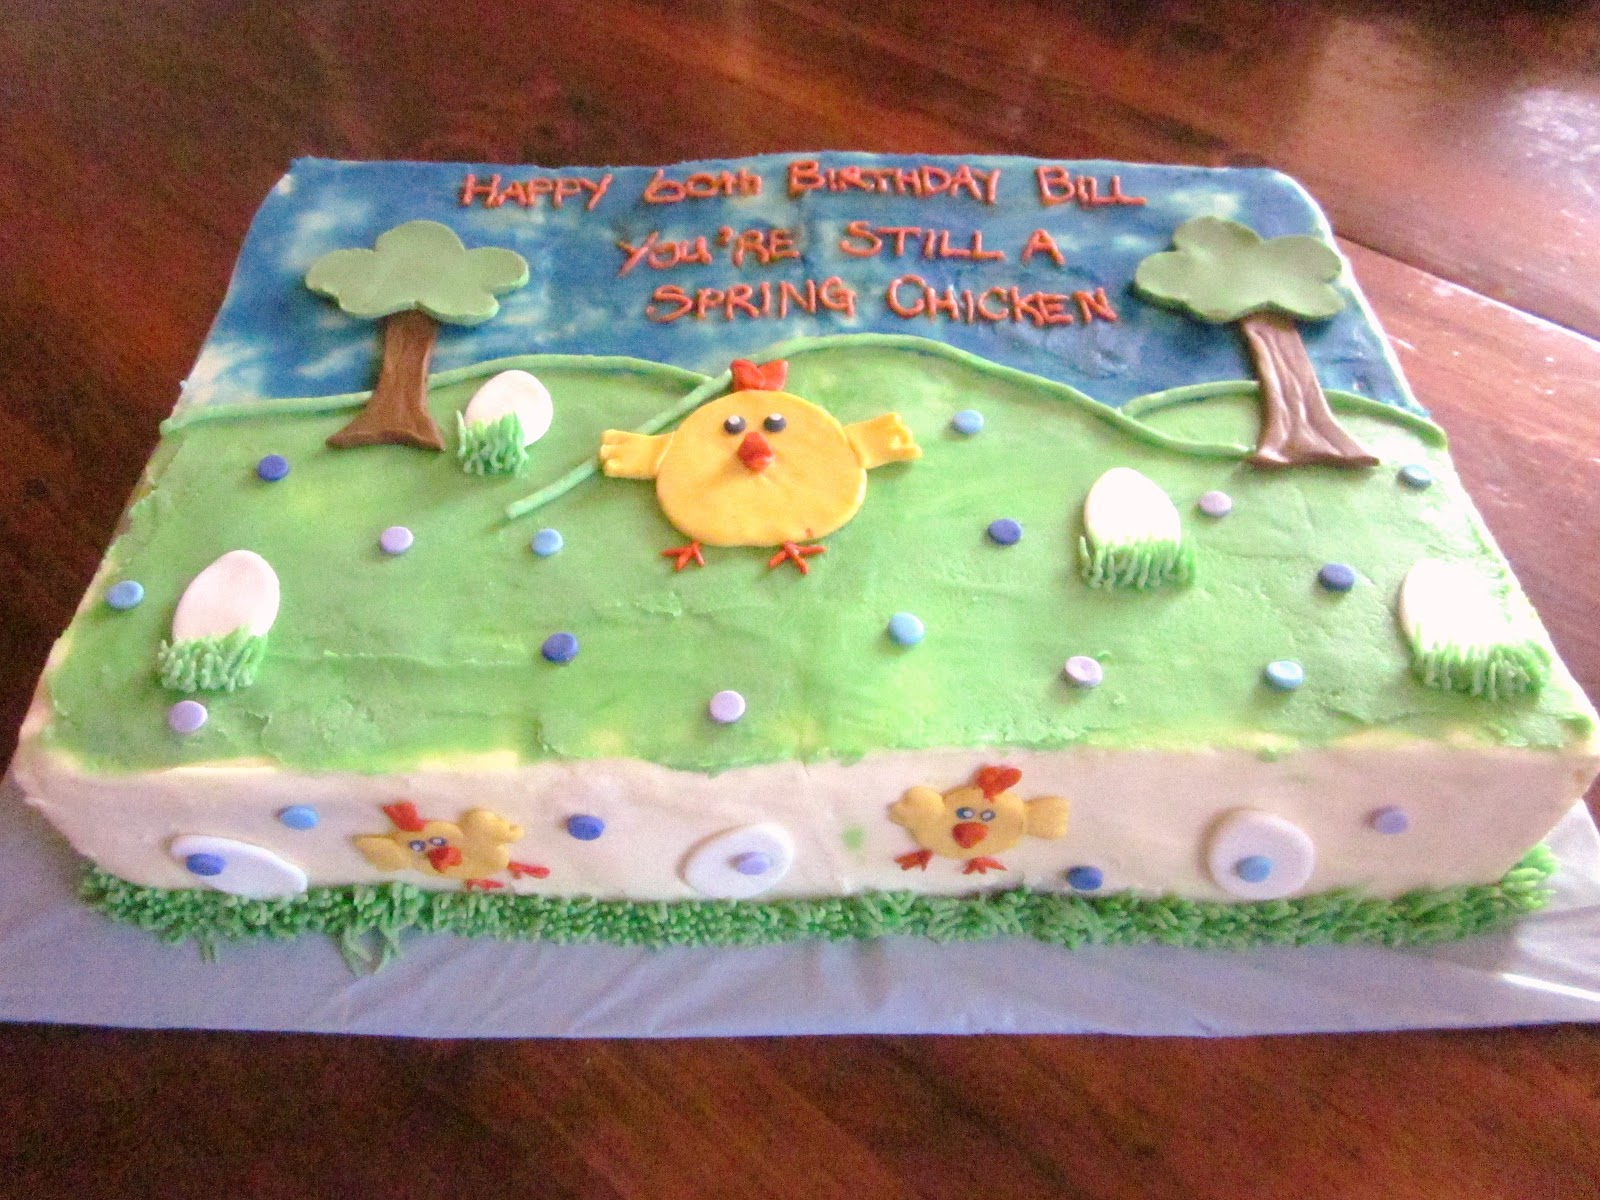 Second Generation Cake Design Spring Chicken Easterbirthday Cake